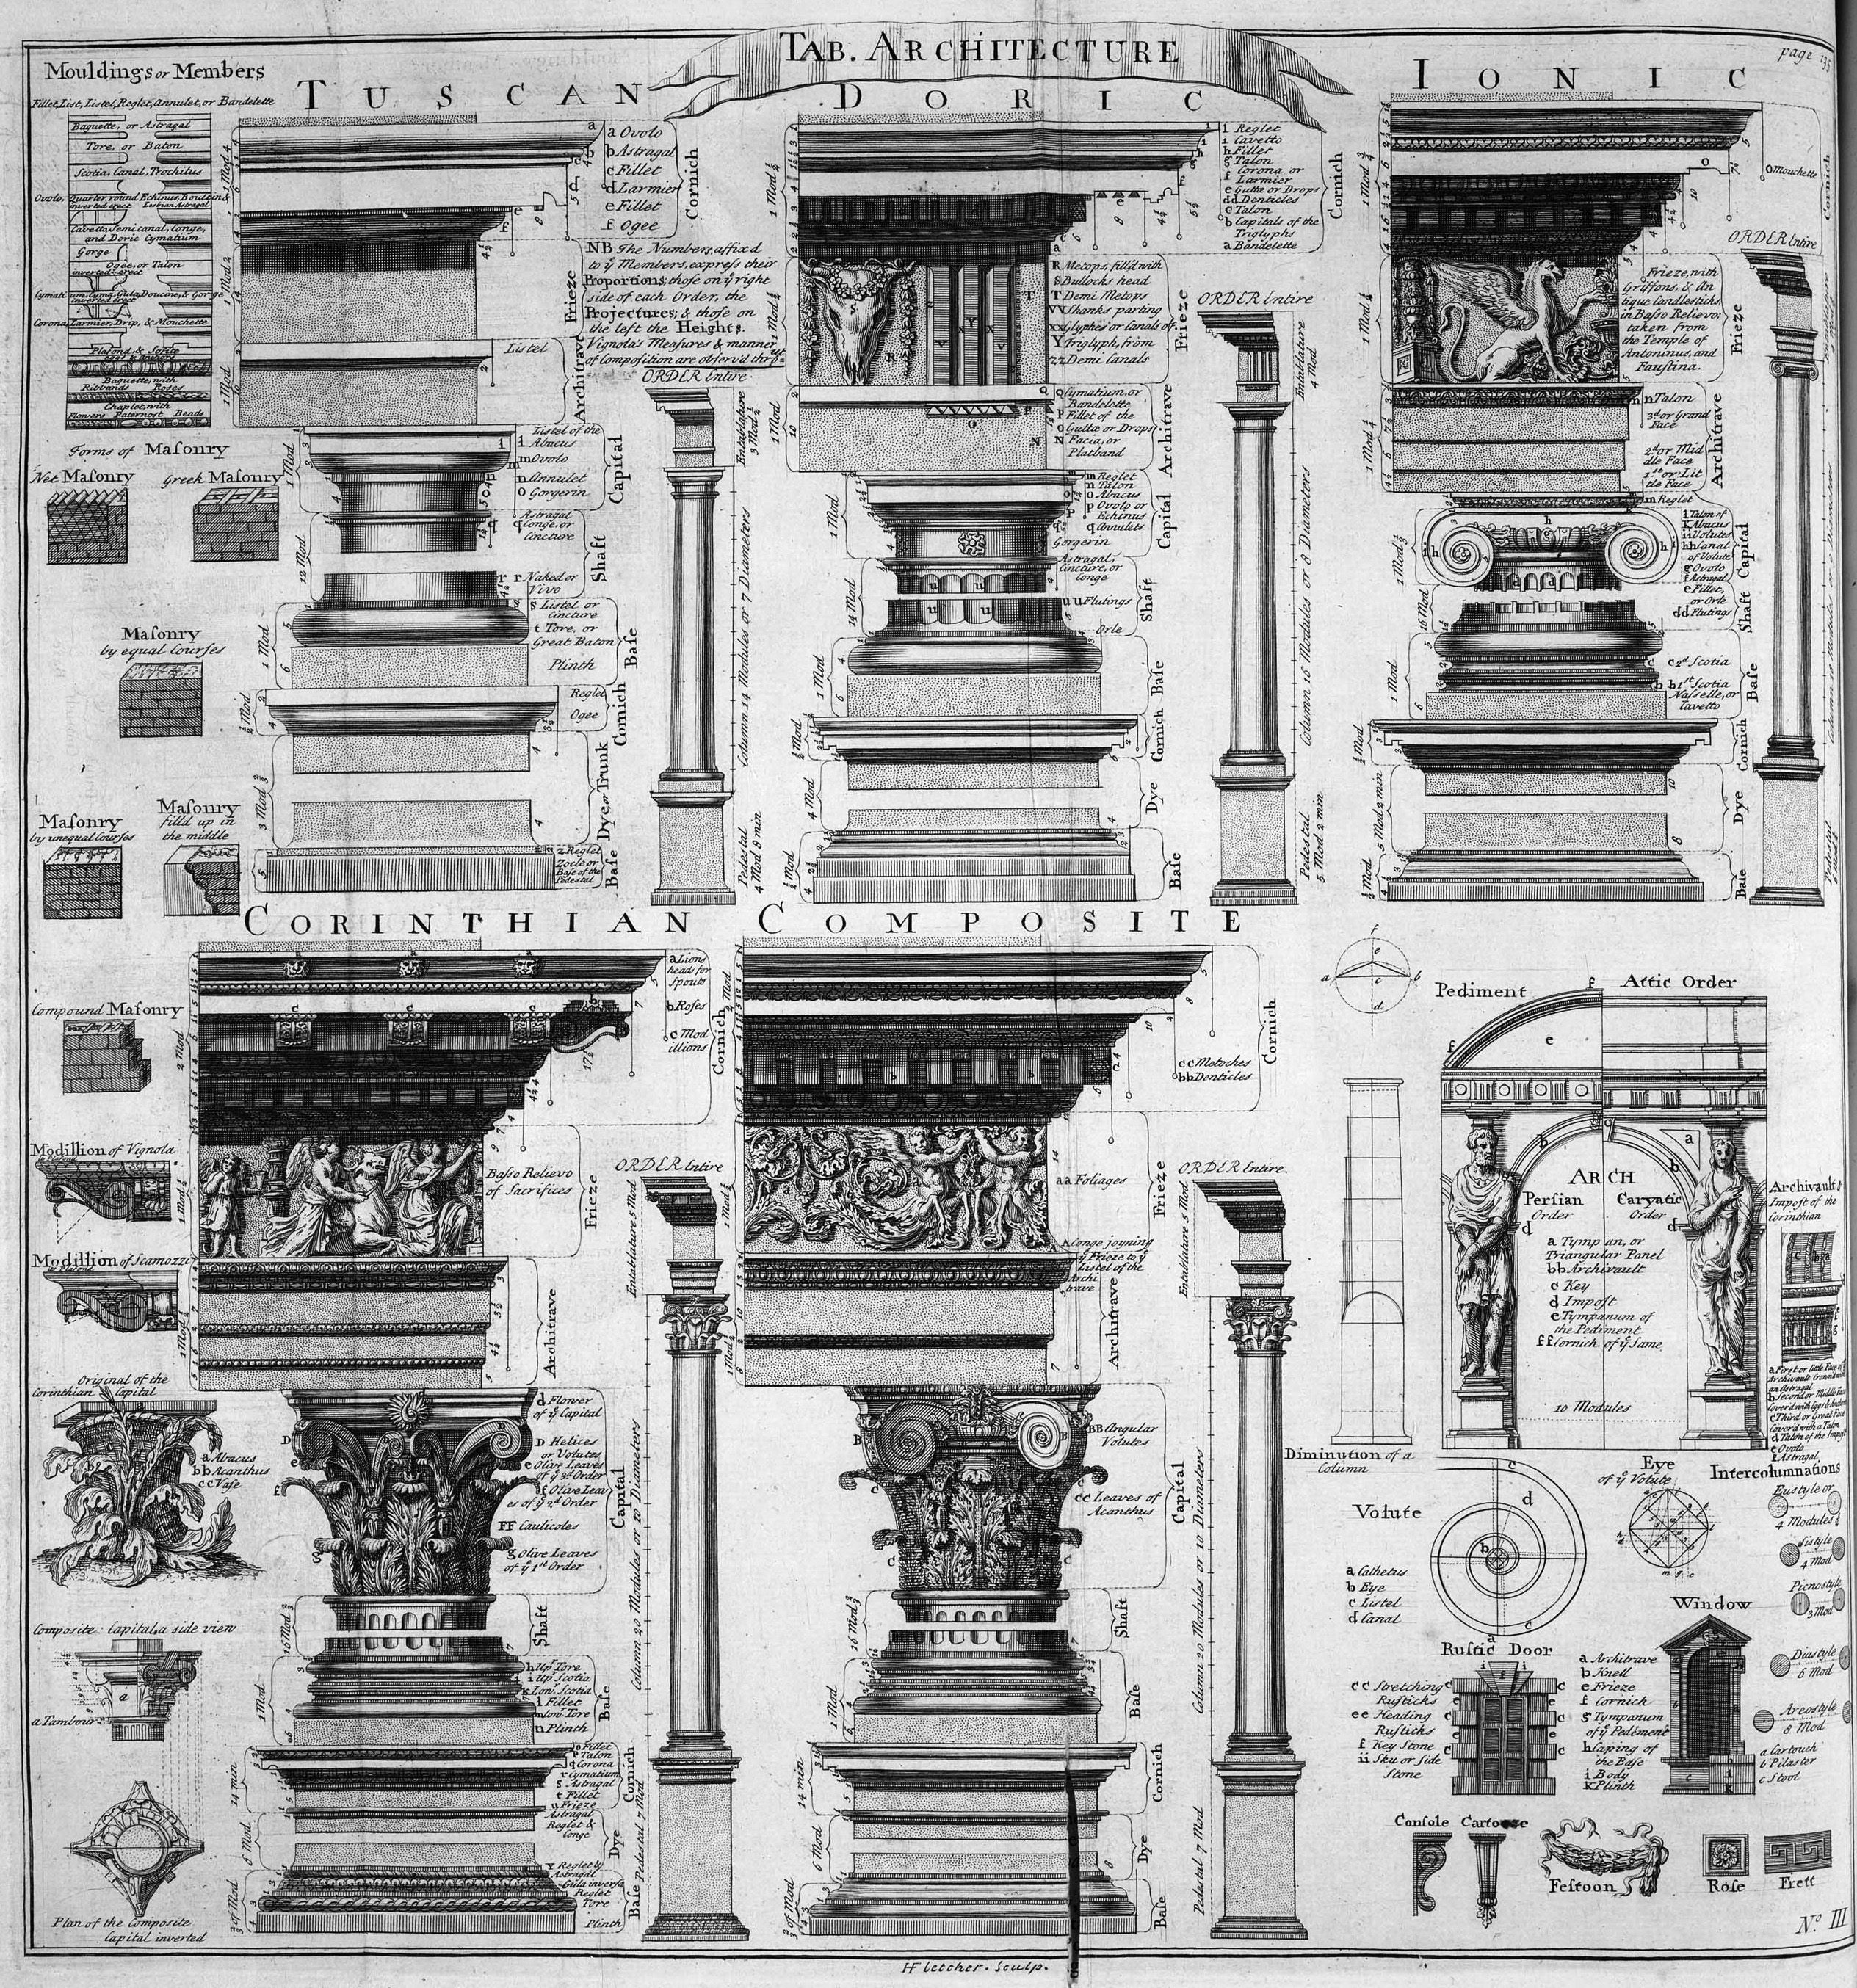 Classical Architecture Terms: The 5 Classical Orders; Tuscan, Doric, Ionic, Cortinthian